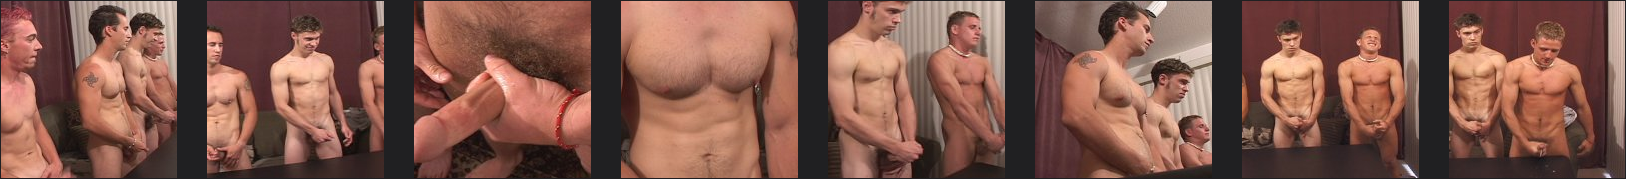 4 horny straight guys cumming together